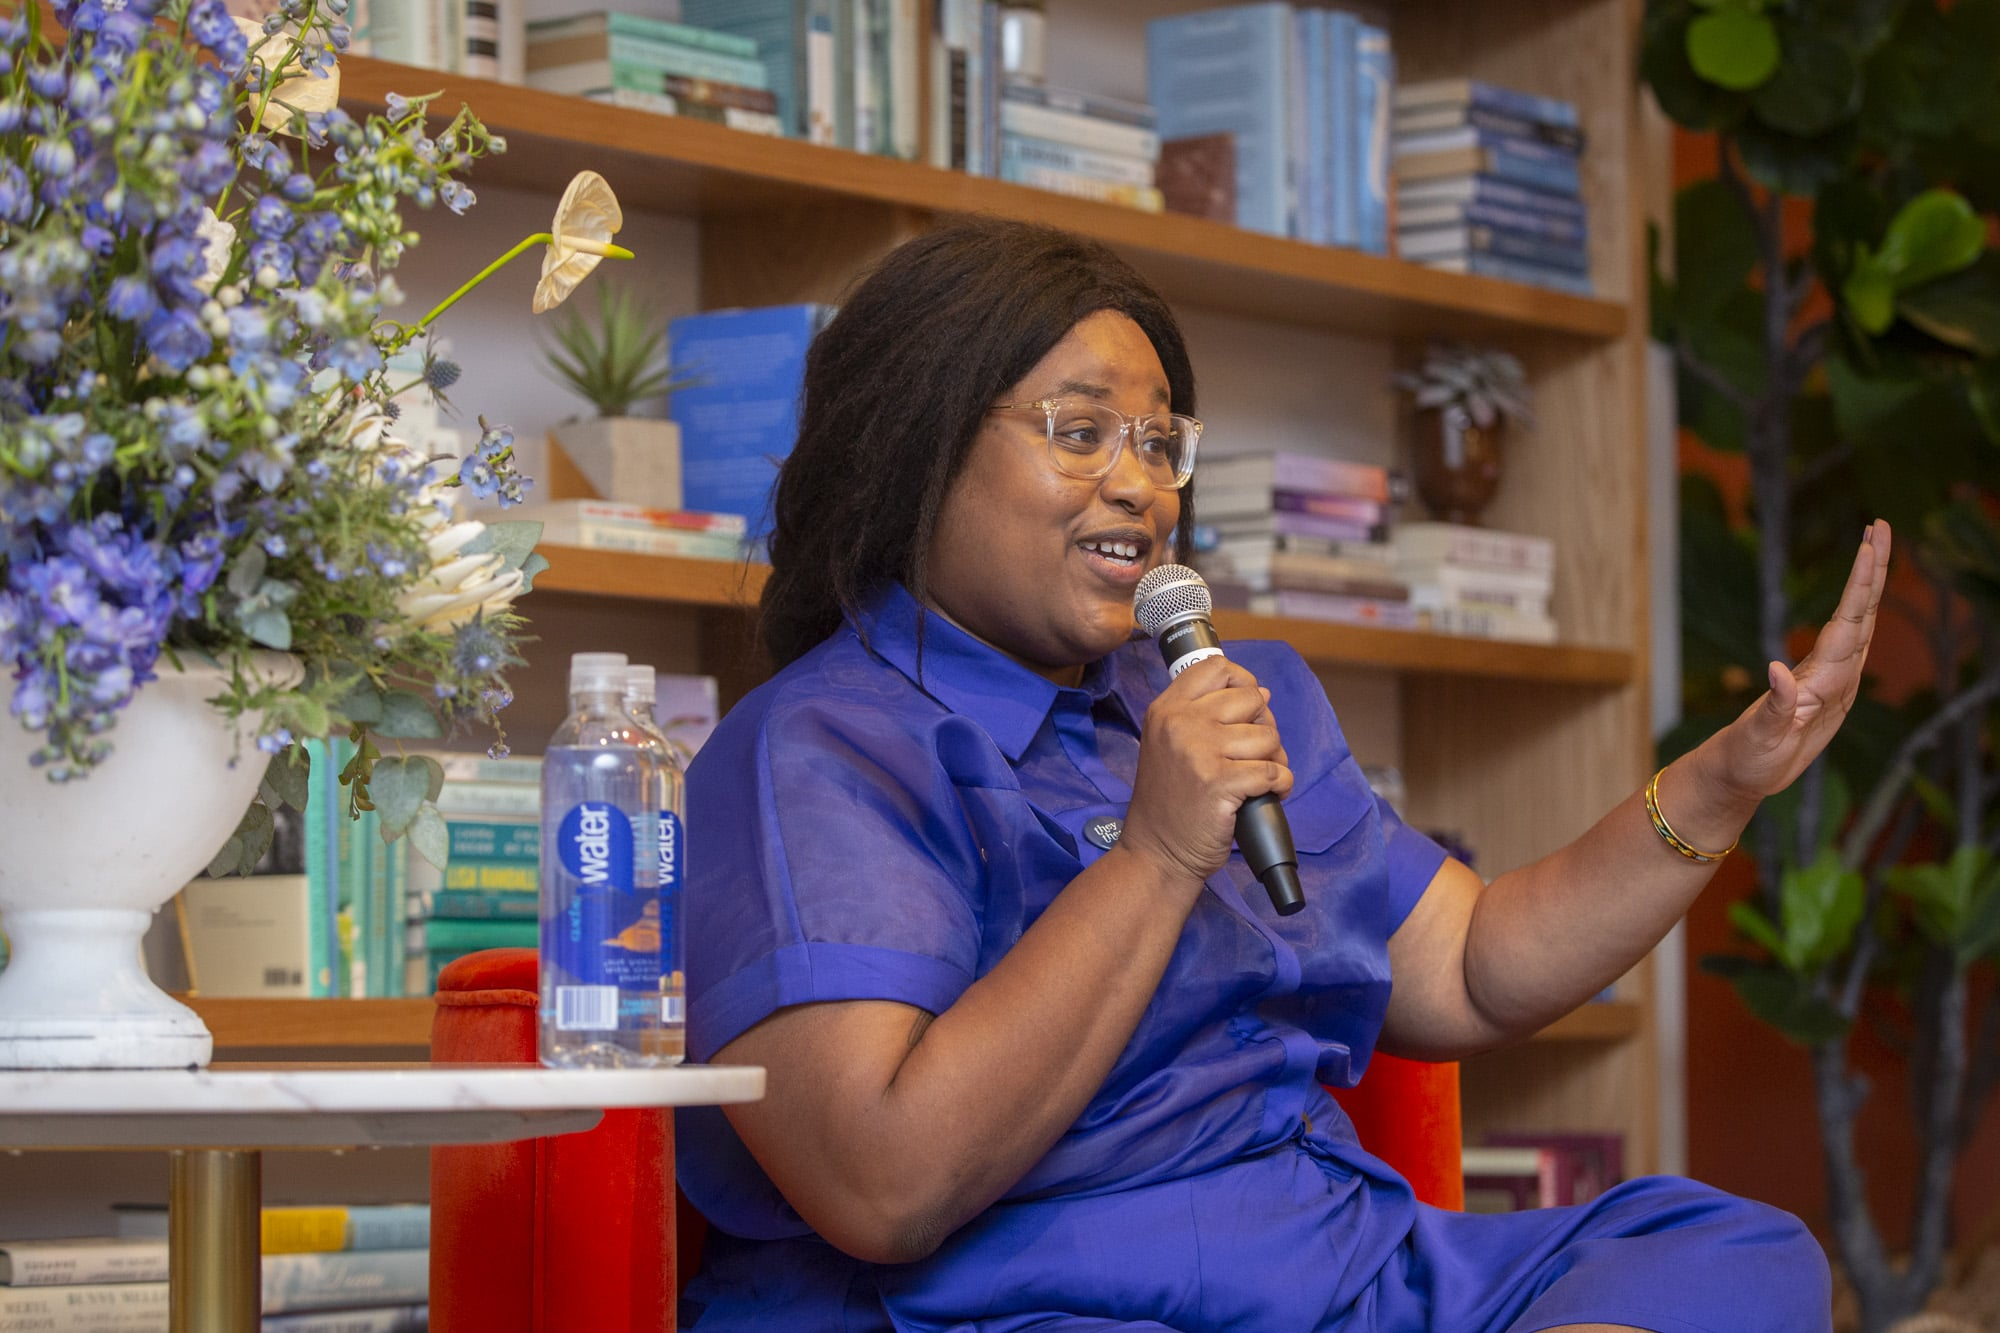 LOS ANGELES, MAY 2, 2019: The Wing and Smartwater event in West Hollywood with Aminatou Sow